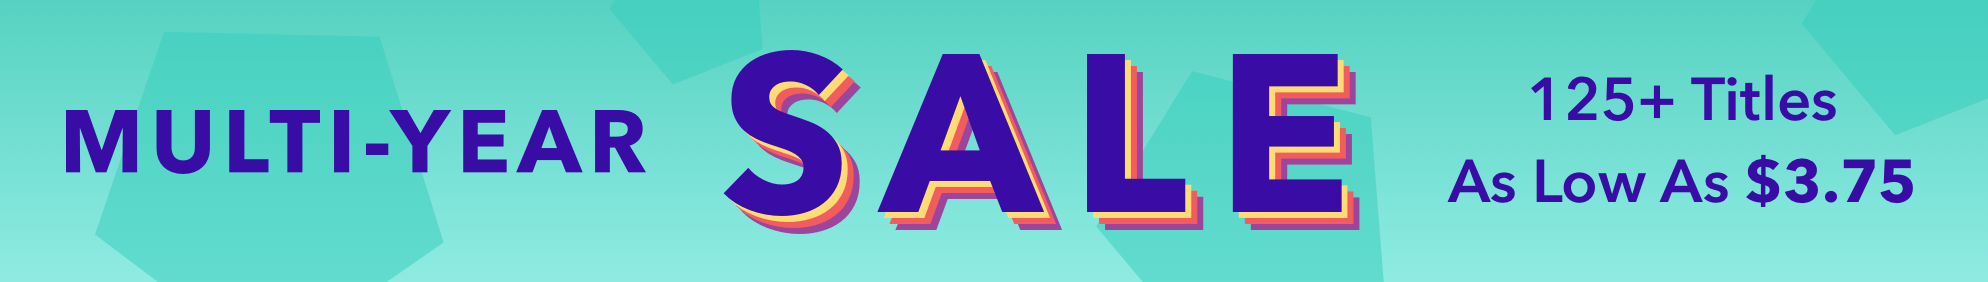 The Multi-Year Sale July 20